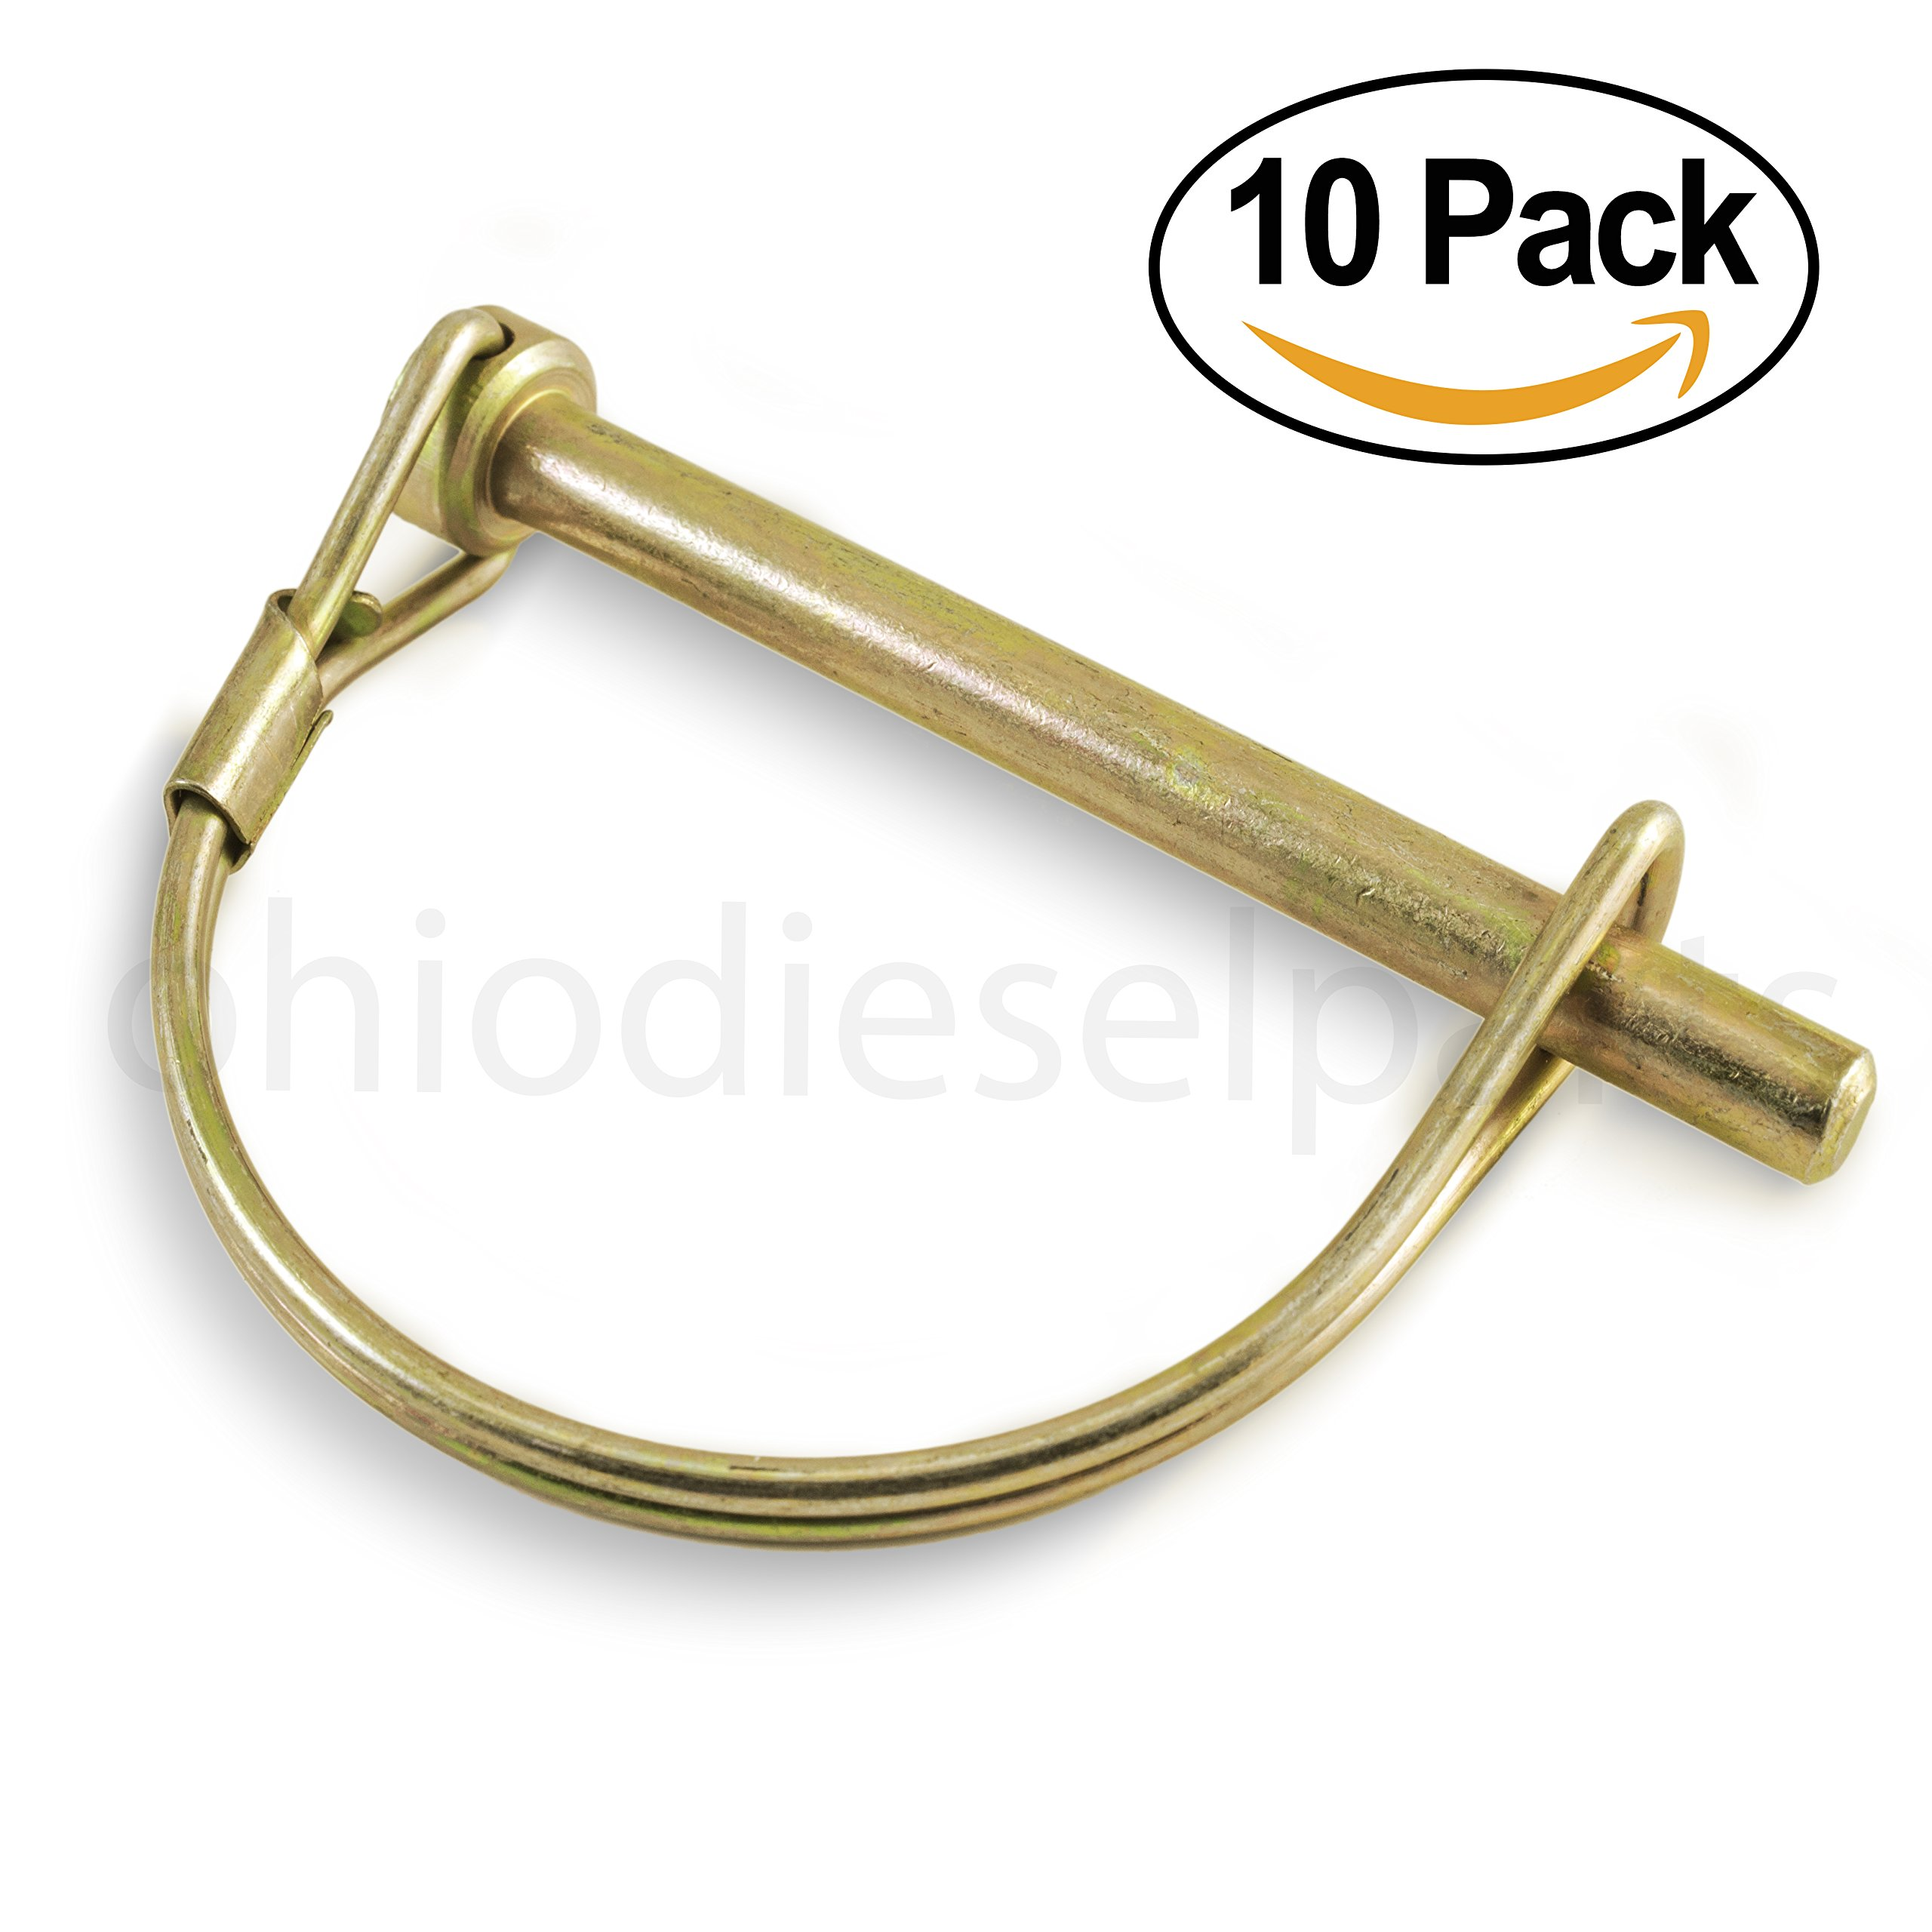 PTO Shaft Locking Pin 1/4'' x 2-1/4'' ( PACK of 10)